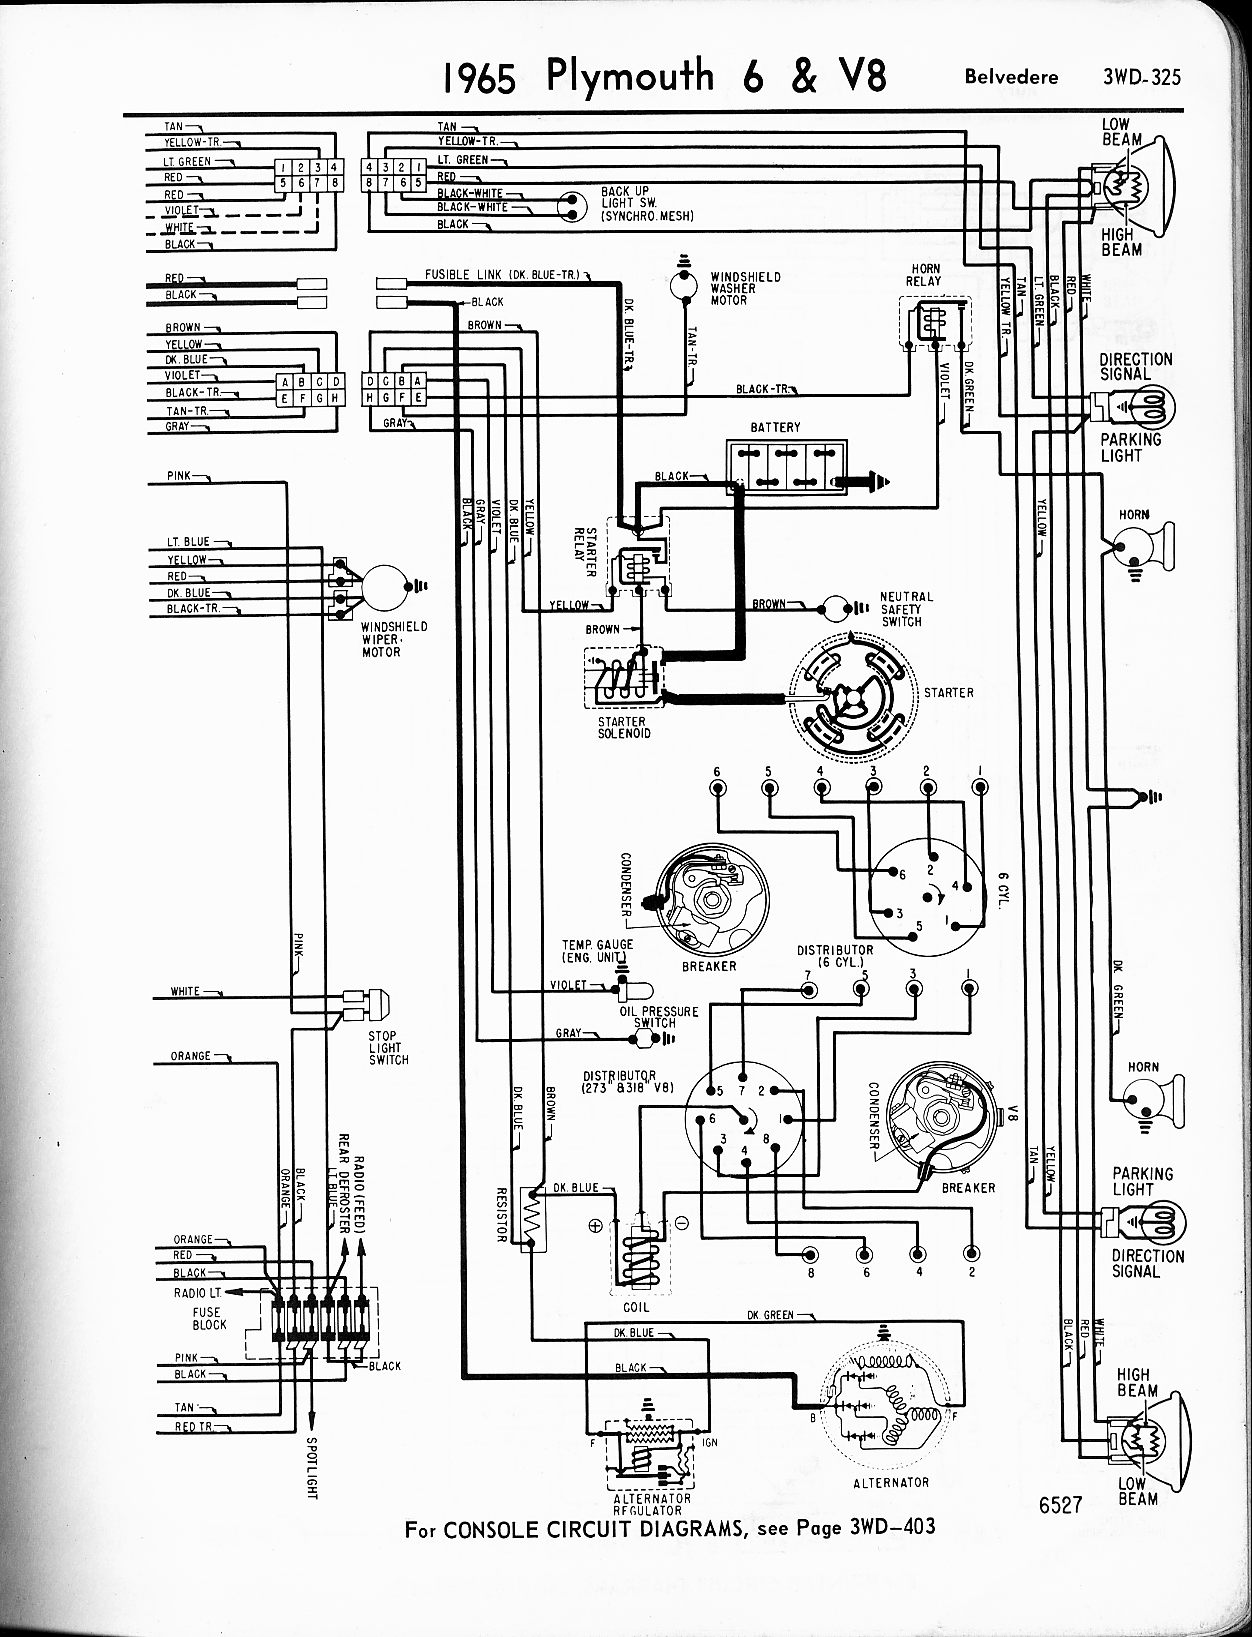 67 Plymouth Barracuda Wiring Diagram | Wiring Liry on ford f-350 pickup, ford excursion wiring schematic, 2001 ford wiring schematic, ford ranger wiring schematic, ford f800 wiring schematic, ford e-450 wiring schematic, ford e-350 van wiring schematic, ford escape wiring schematic, ford f150 wiring schematic, ford super duty wiring schematic, ford expedition wiring schematic, ford f550 wiring schematic, ford flex wiring schematic, ford f53 wiring schematic, ford radio wiring schematic, ford f-350 lifted trucks, ford f250 wiring schematic, ford f-series dually diesel, ford f-350 regular cab, ford 7 pin plug schematic,